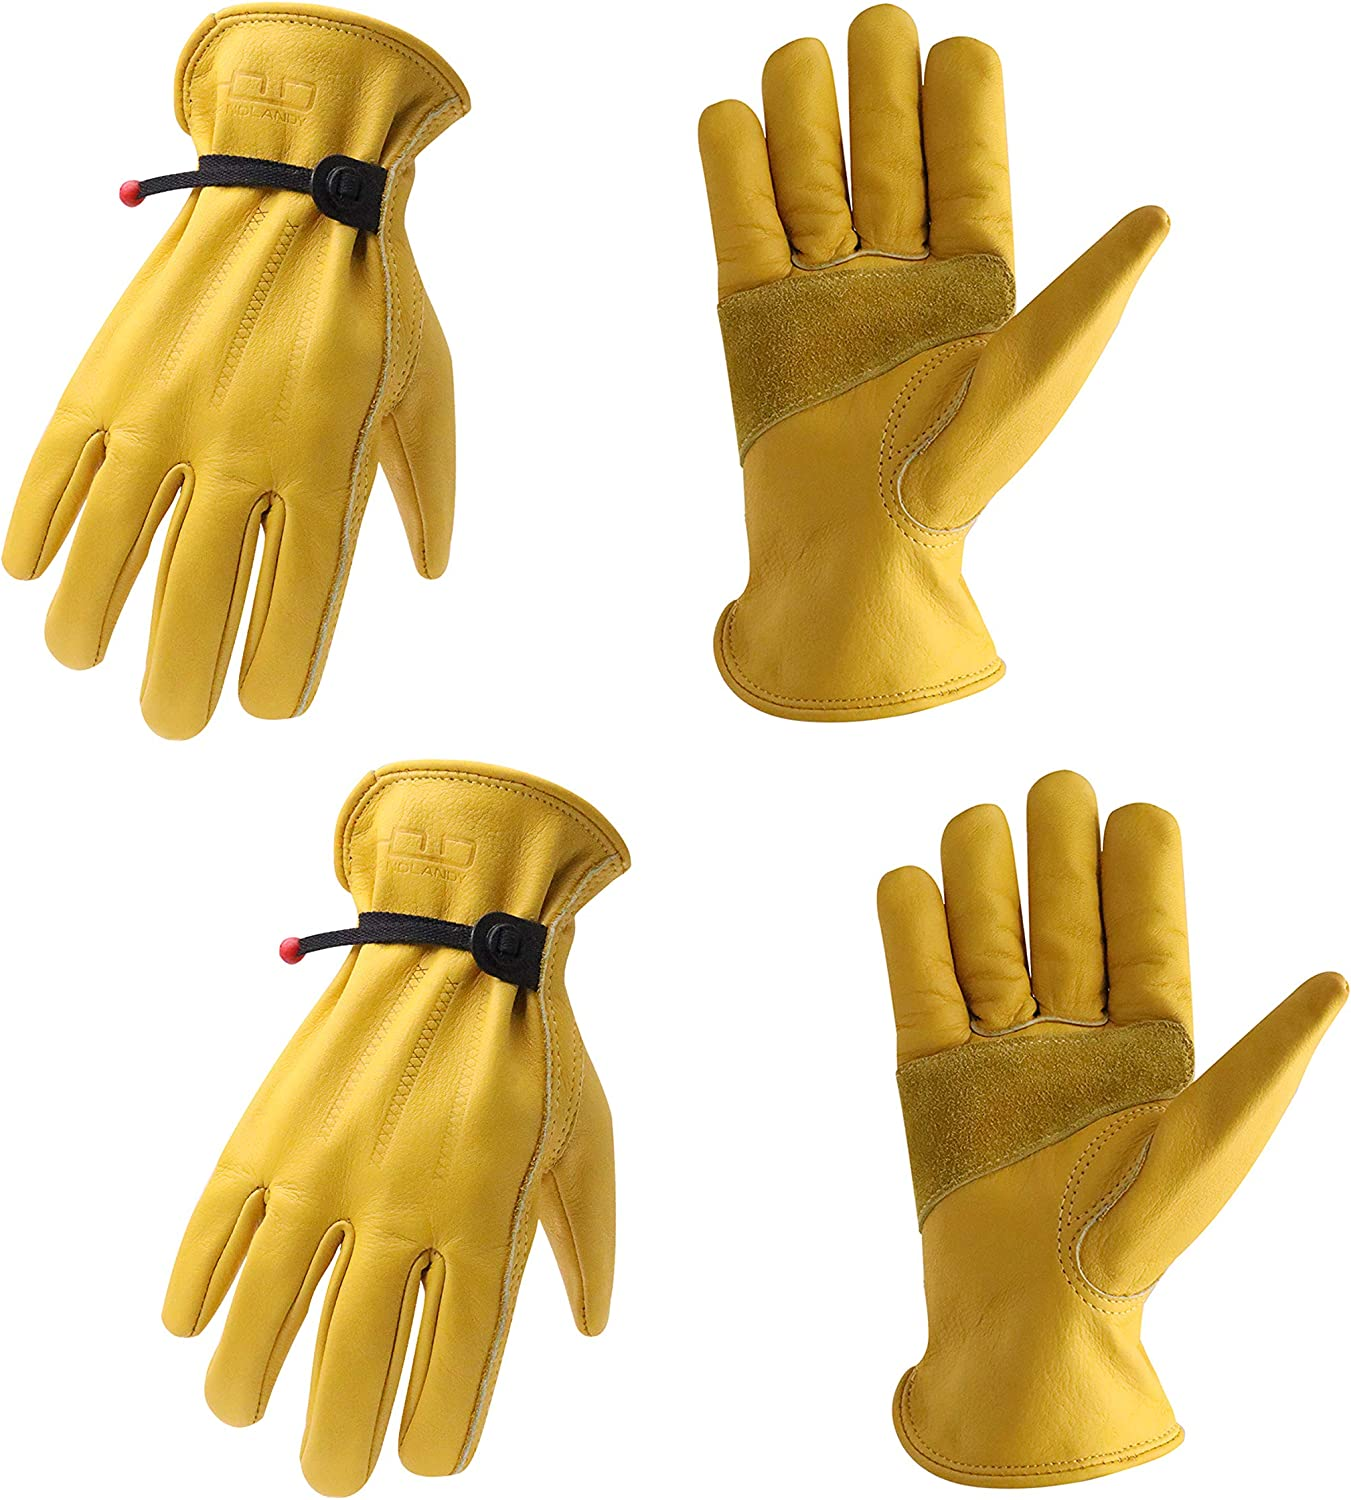 2 Pairs Cowhide Leather Luxury goods Work Gloves Reinforced for Palm Men Popular brand in the world with